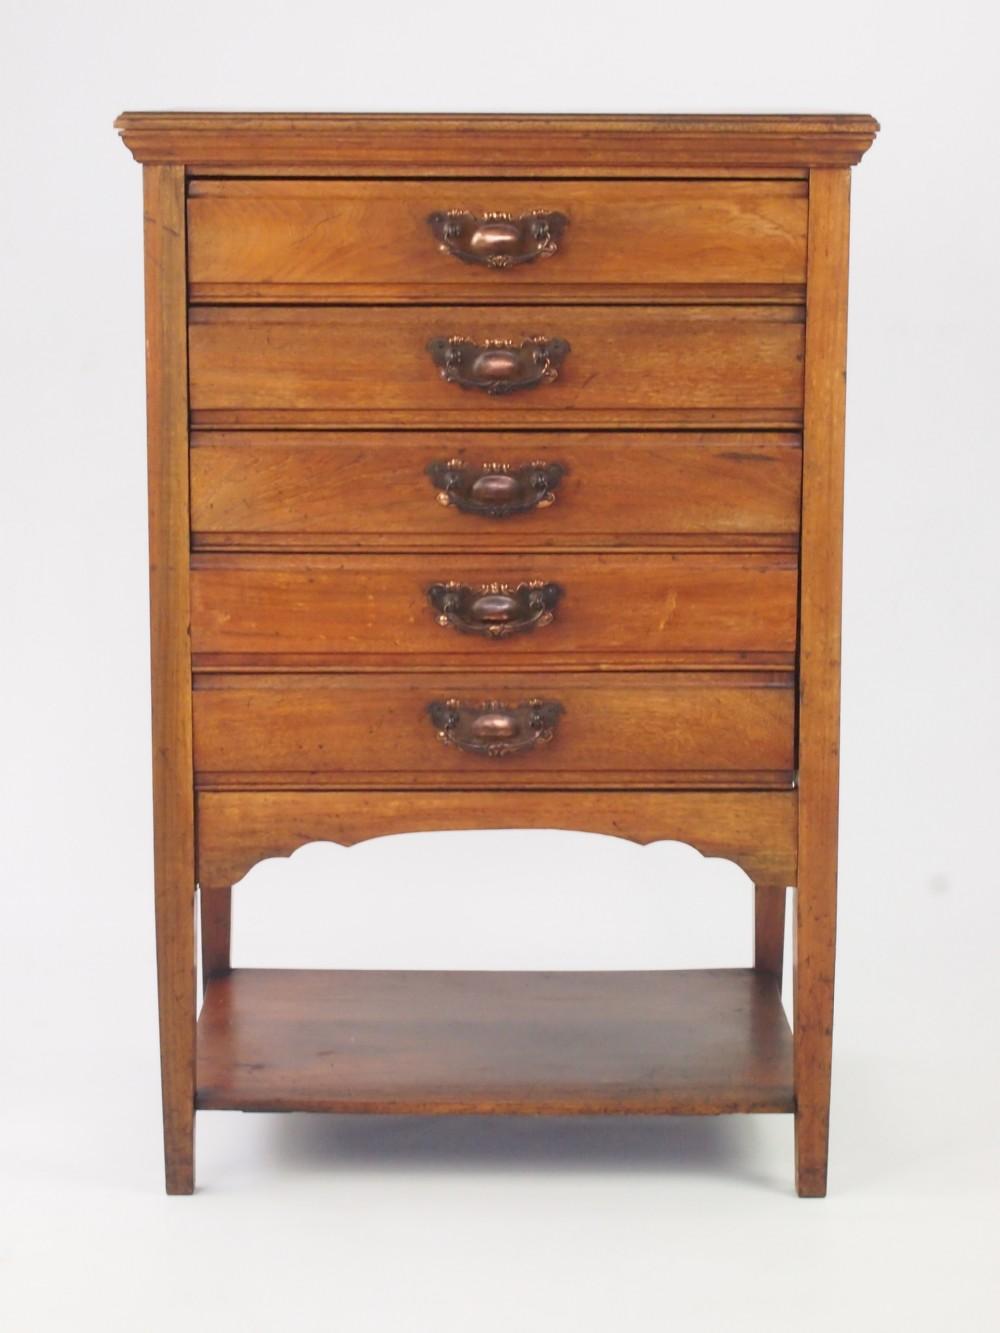 Small Antique Edwardian Walnut Music Cabinet Chest Drawers